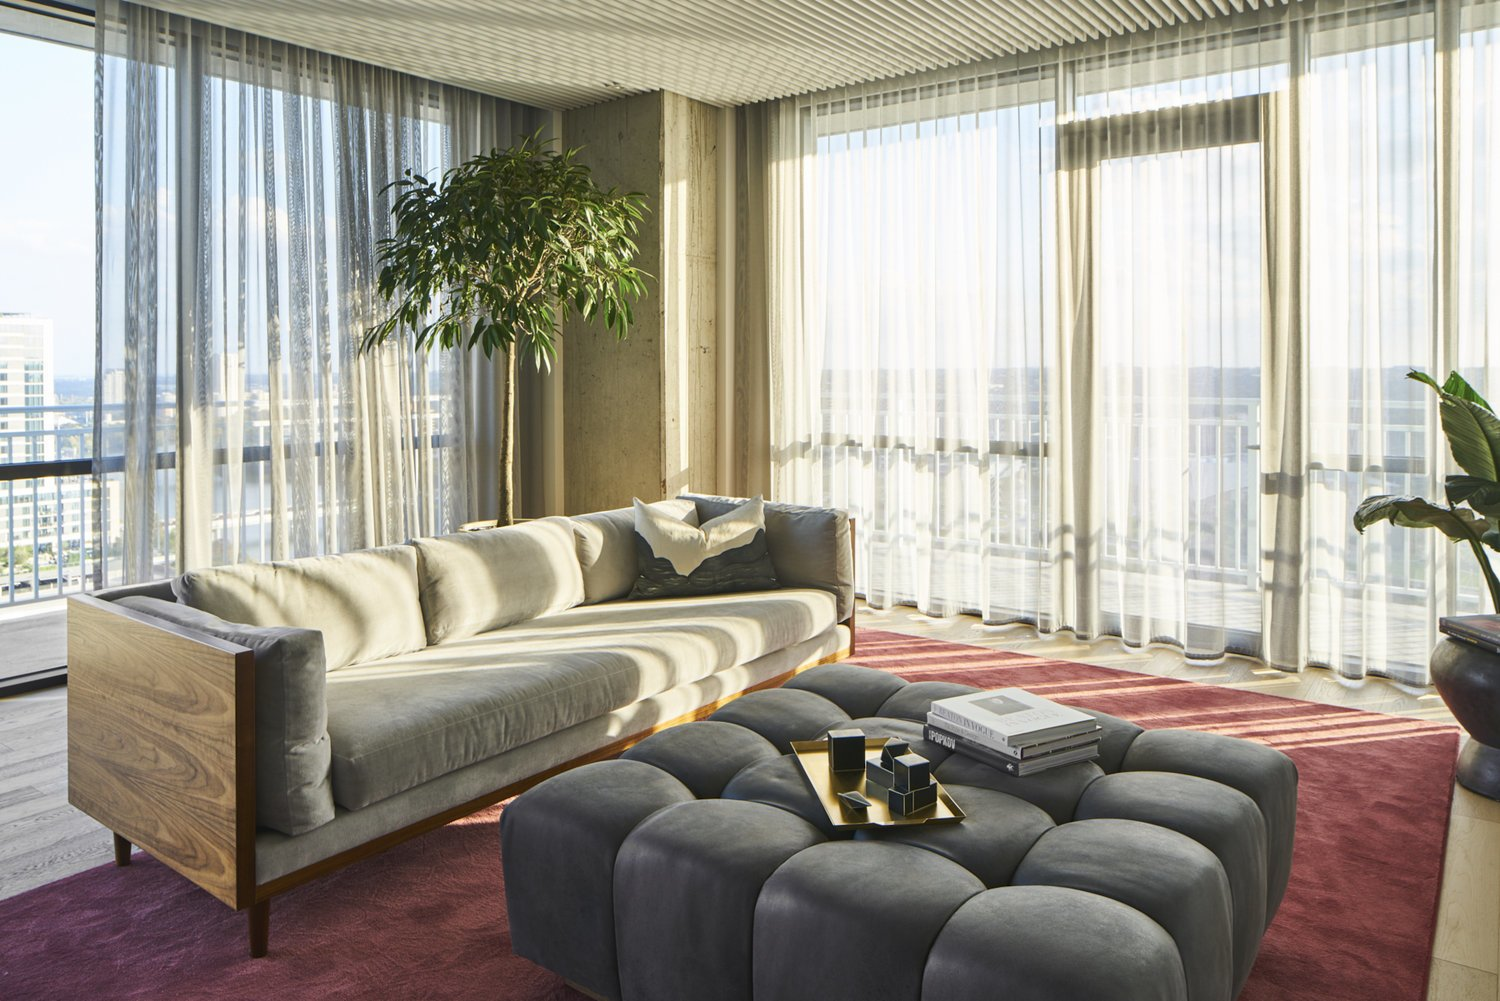 Living Room with wraparound balcony, cement walls, bubble tufted ottoman, wooden couch base, sheer curtains and red area rug.